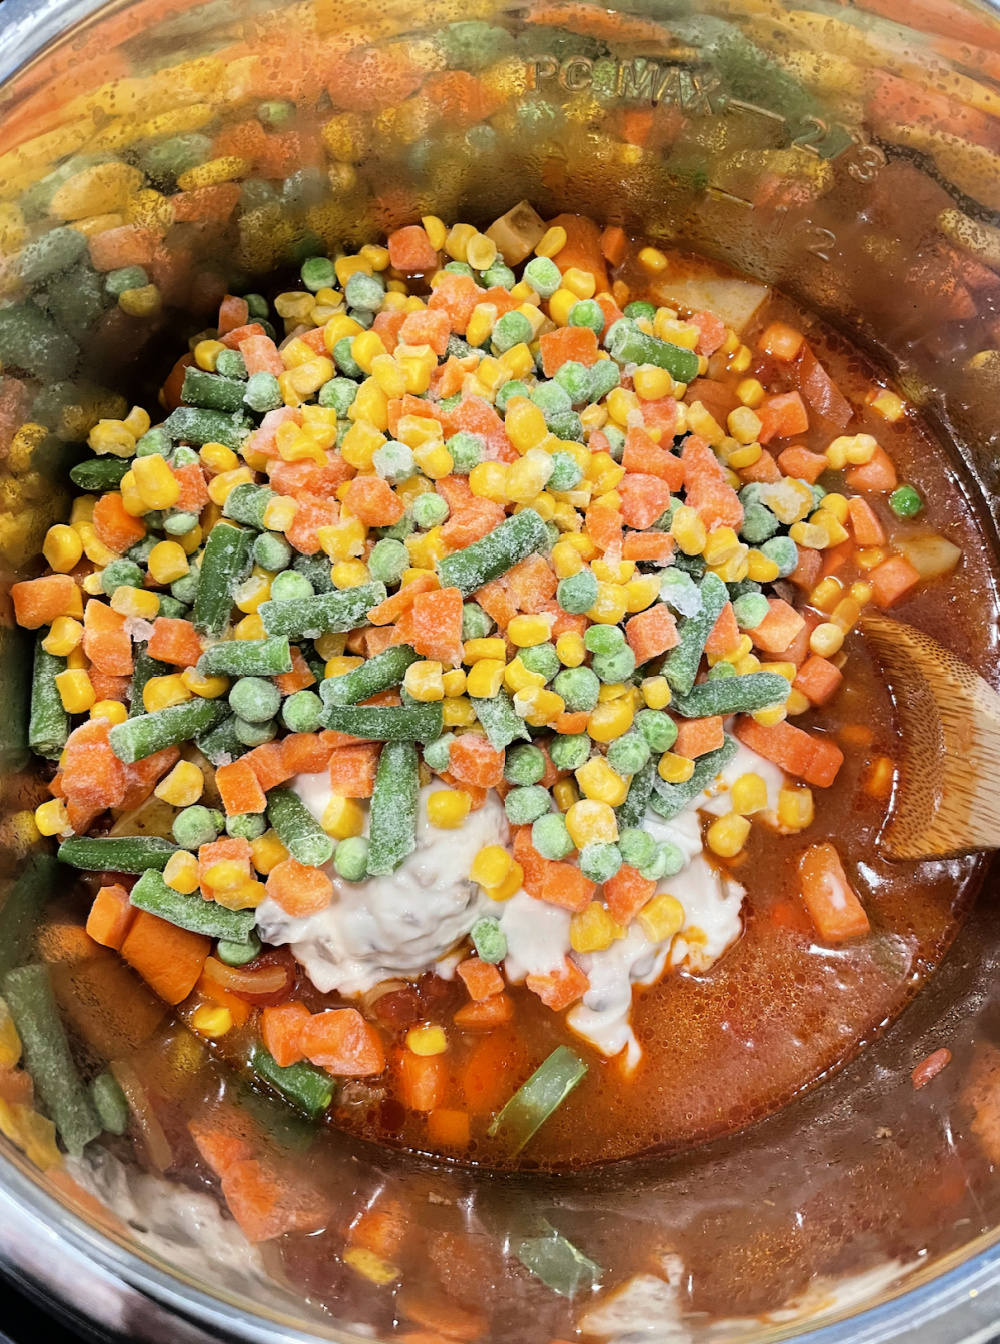 frozen mixed vegetables being mixed into beef stew in instant pot